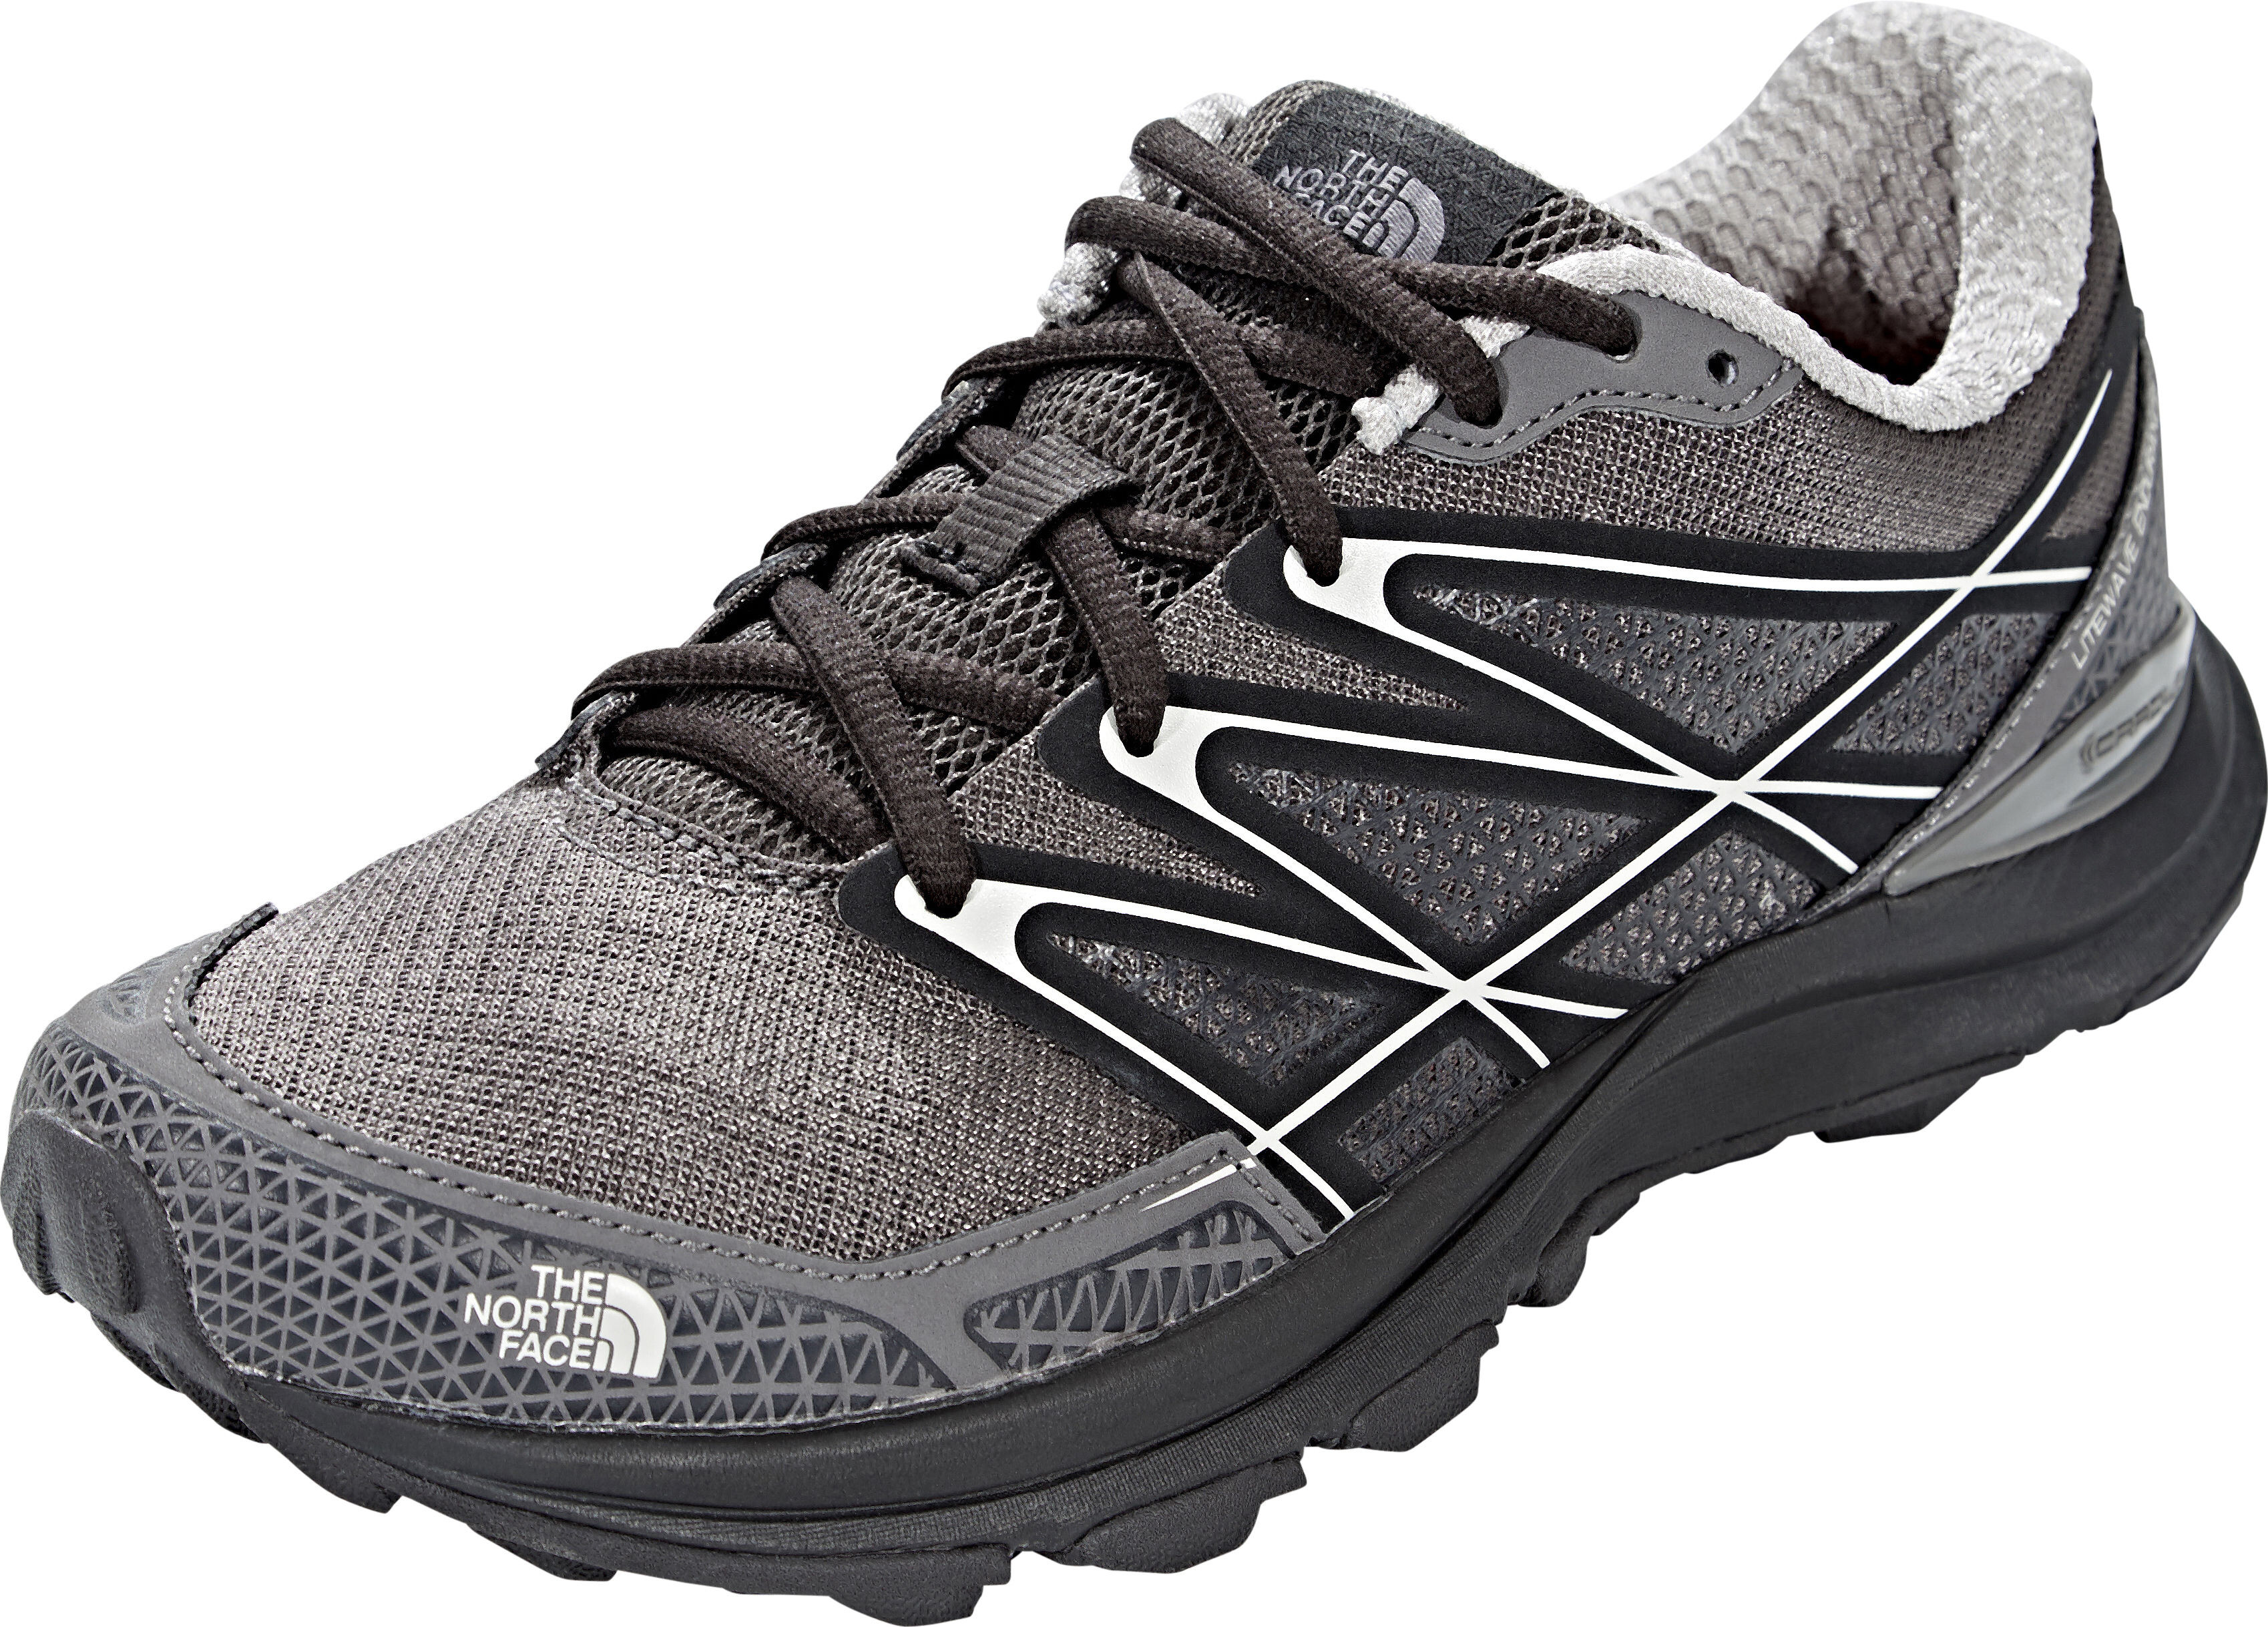 factory price ed3ac e510a The North Face Litewave Endurance Running Trail Shoes Women dark gull  grey/foil grey